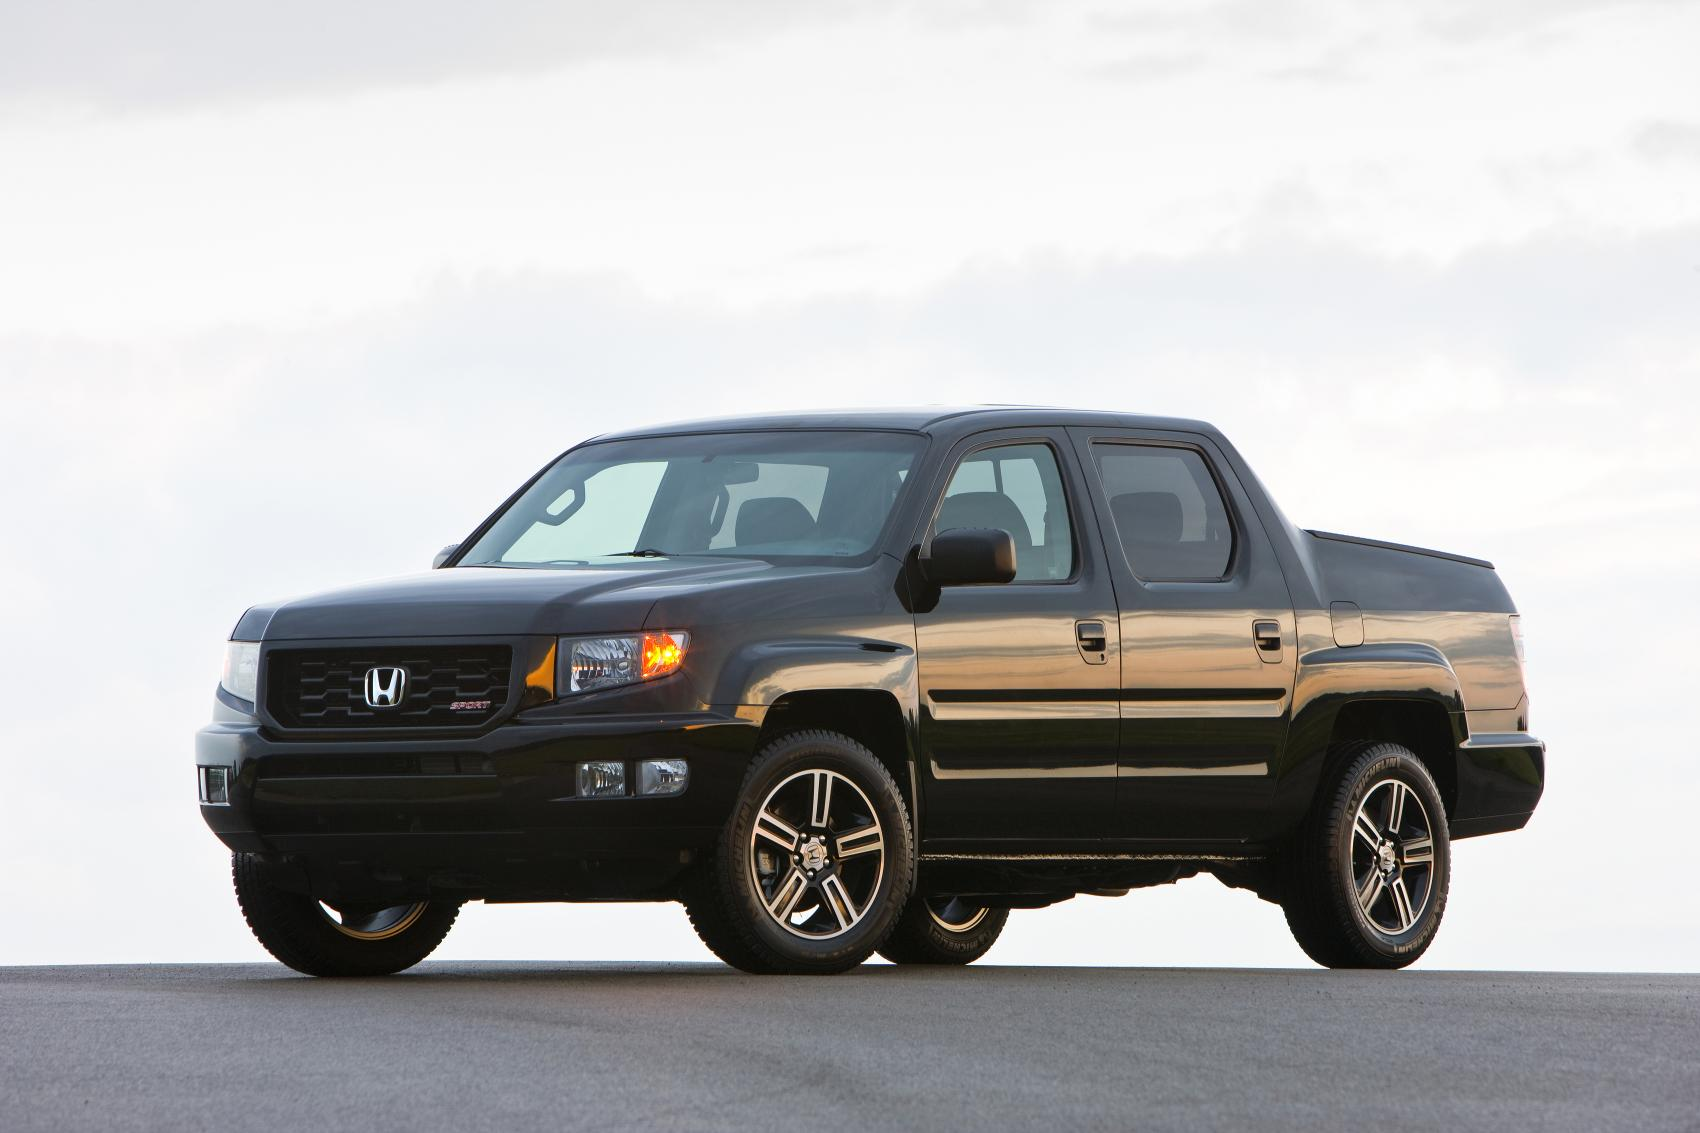 2014 Honda Ridgeline Pricing, New Special Edition Model ...